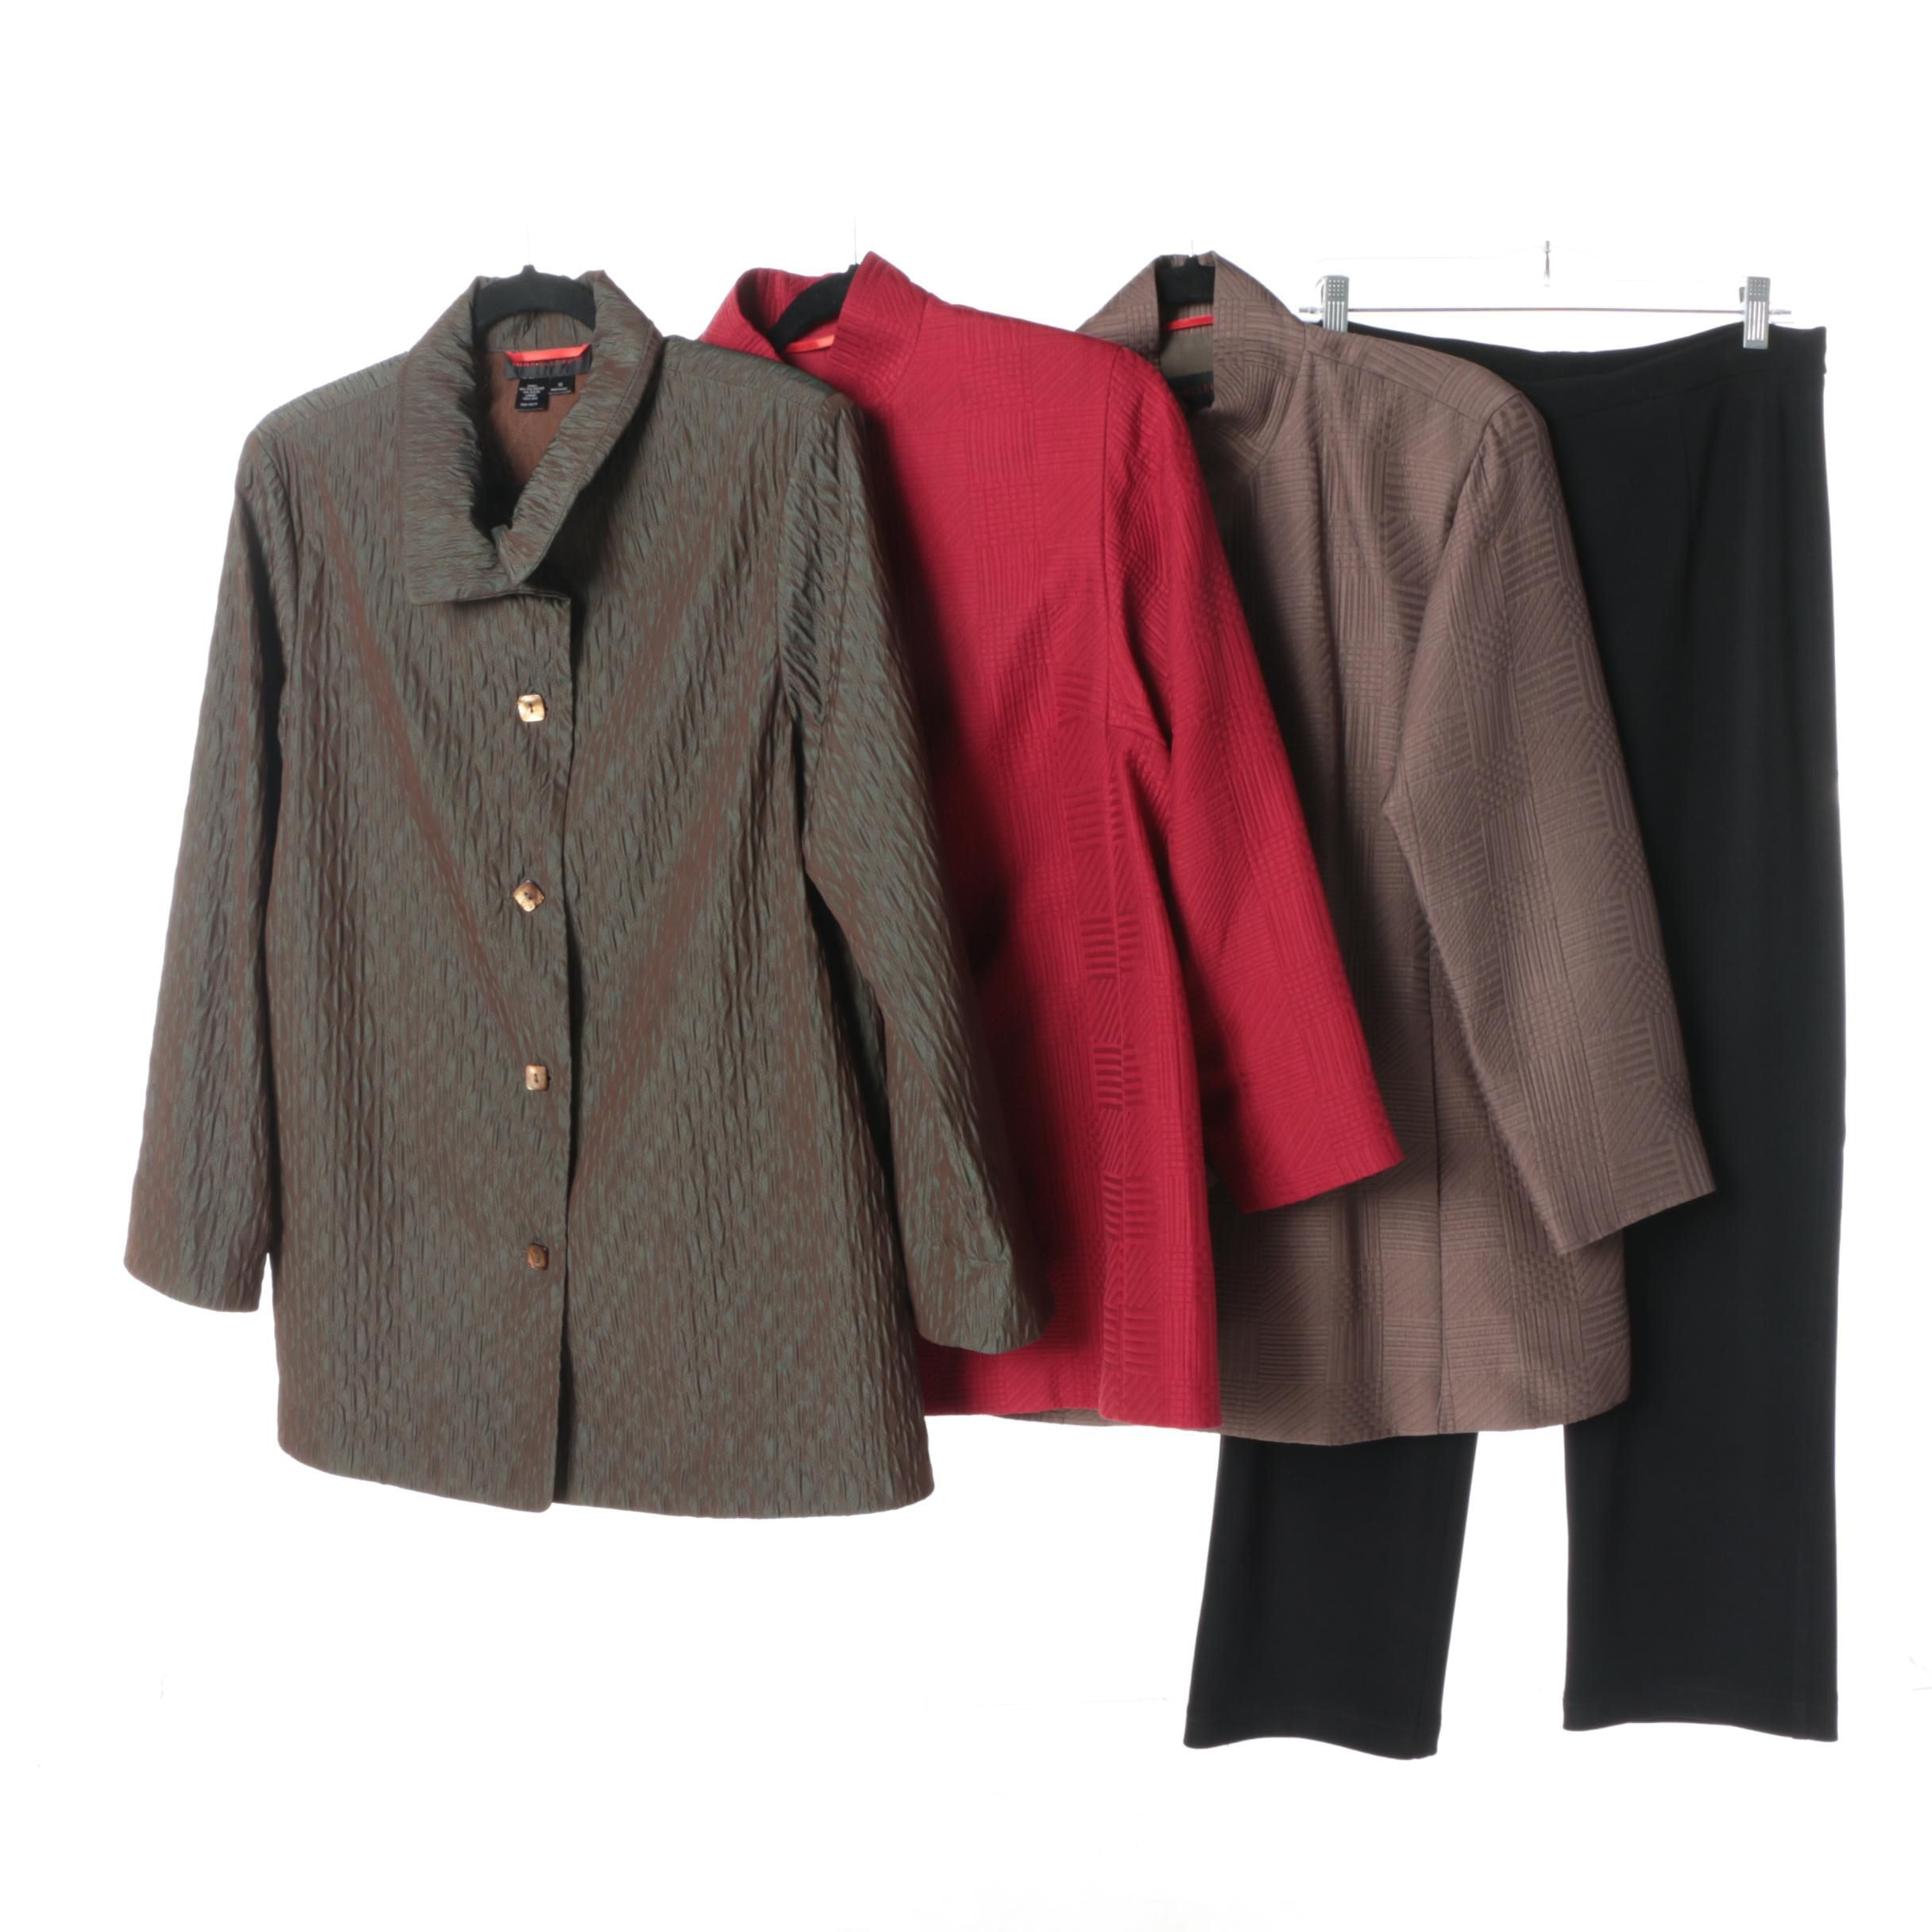 Women's Nina McLemore Jackets and Private Edition Pants